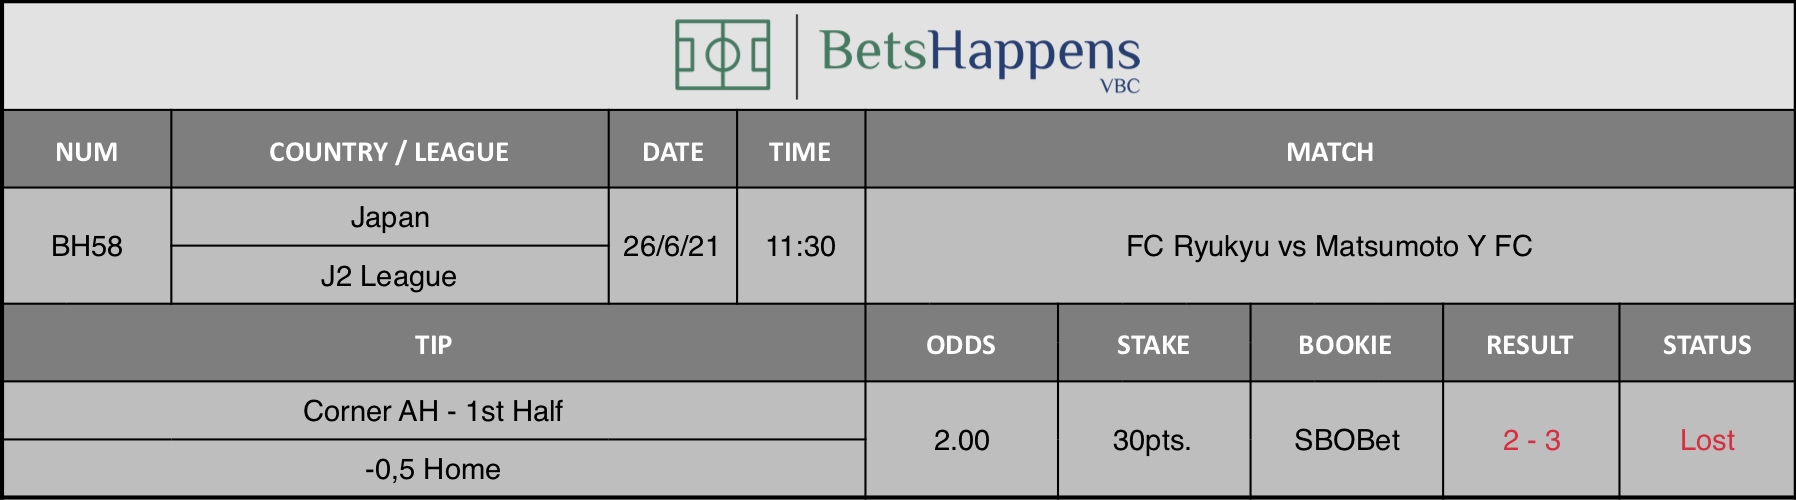 Results of our tip for the FC Ryukyu vs Matsumoto Y FC match Corner AH - 1st Half -0,5 Home is recommended.